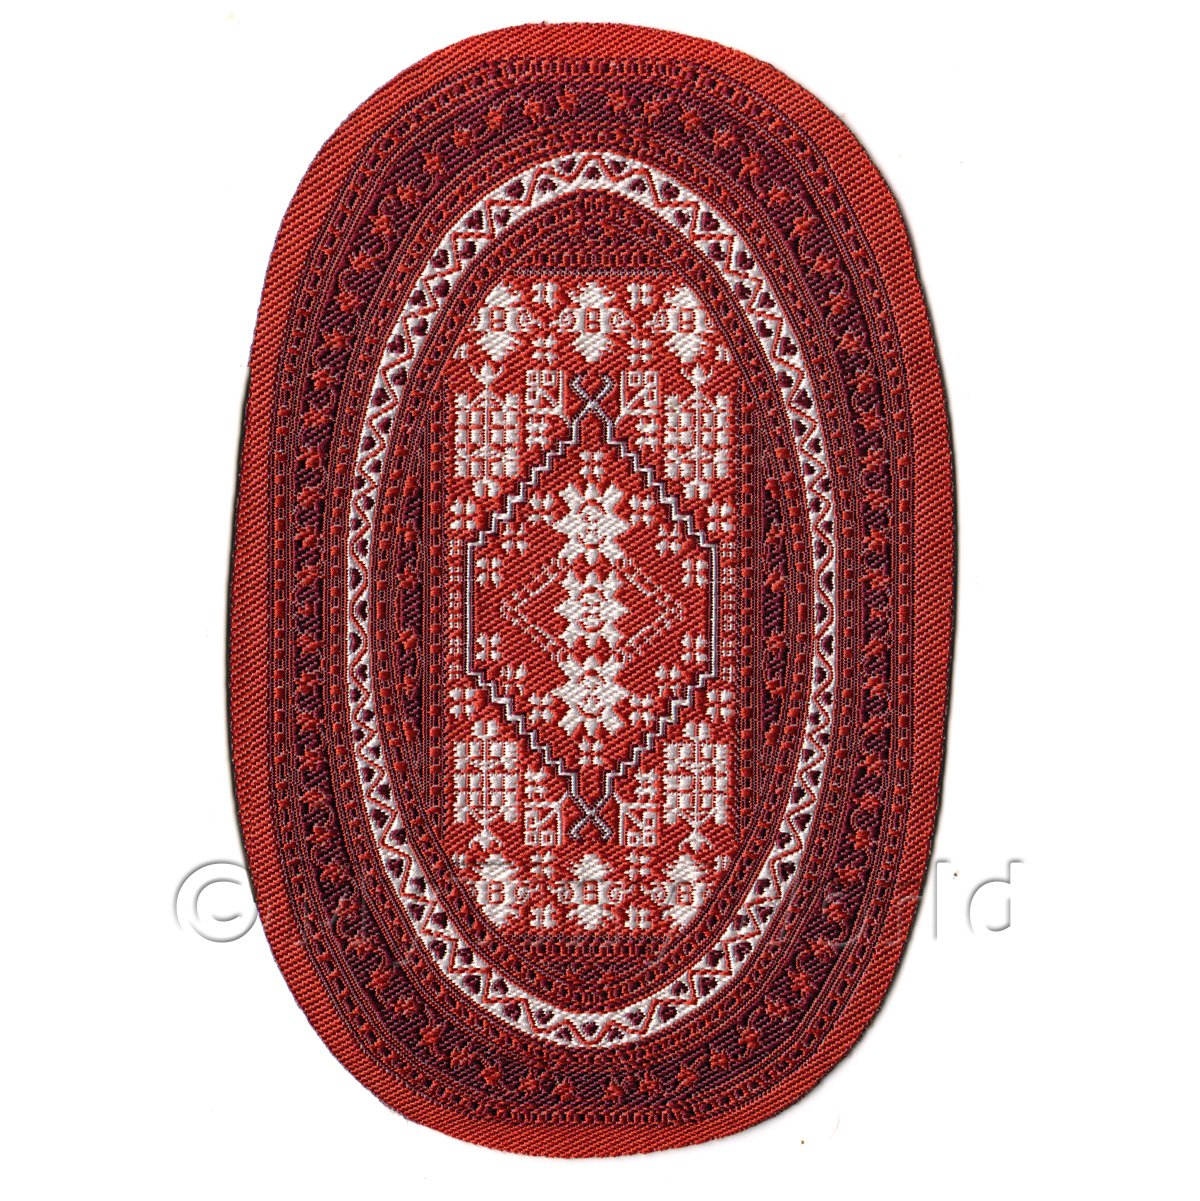 Dolls House Small 16th Century Oval Carpet / Rug (16NSO02)